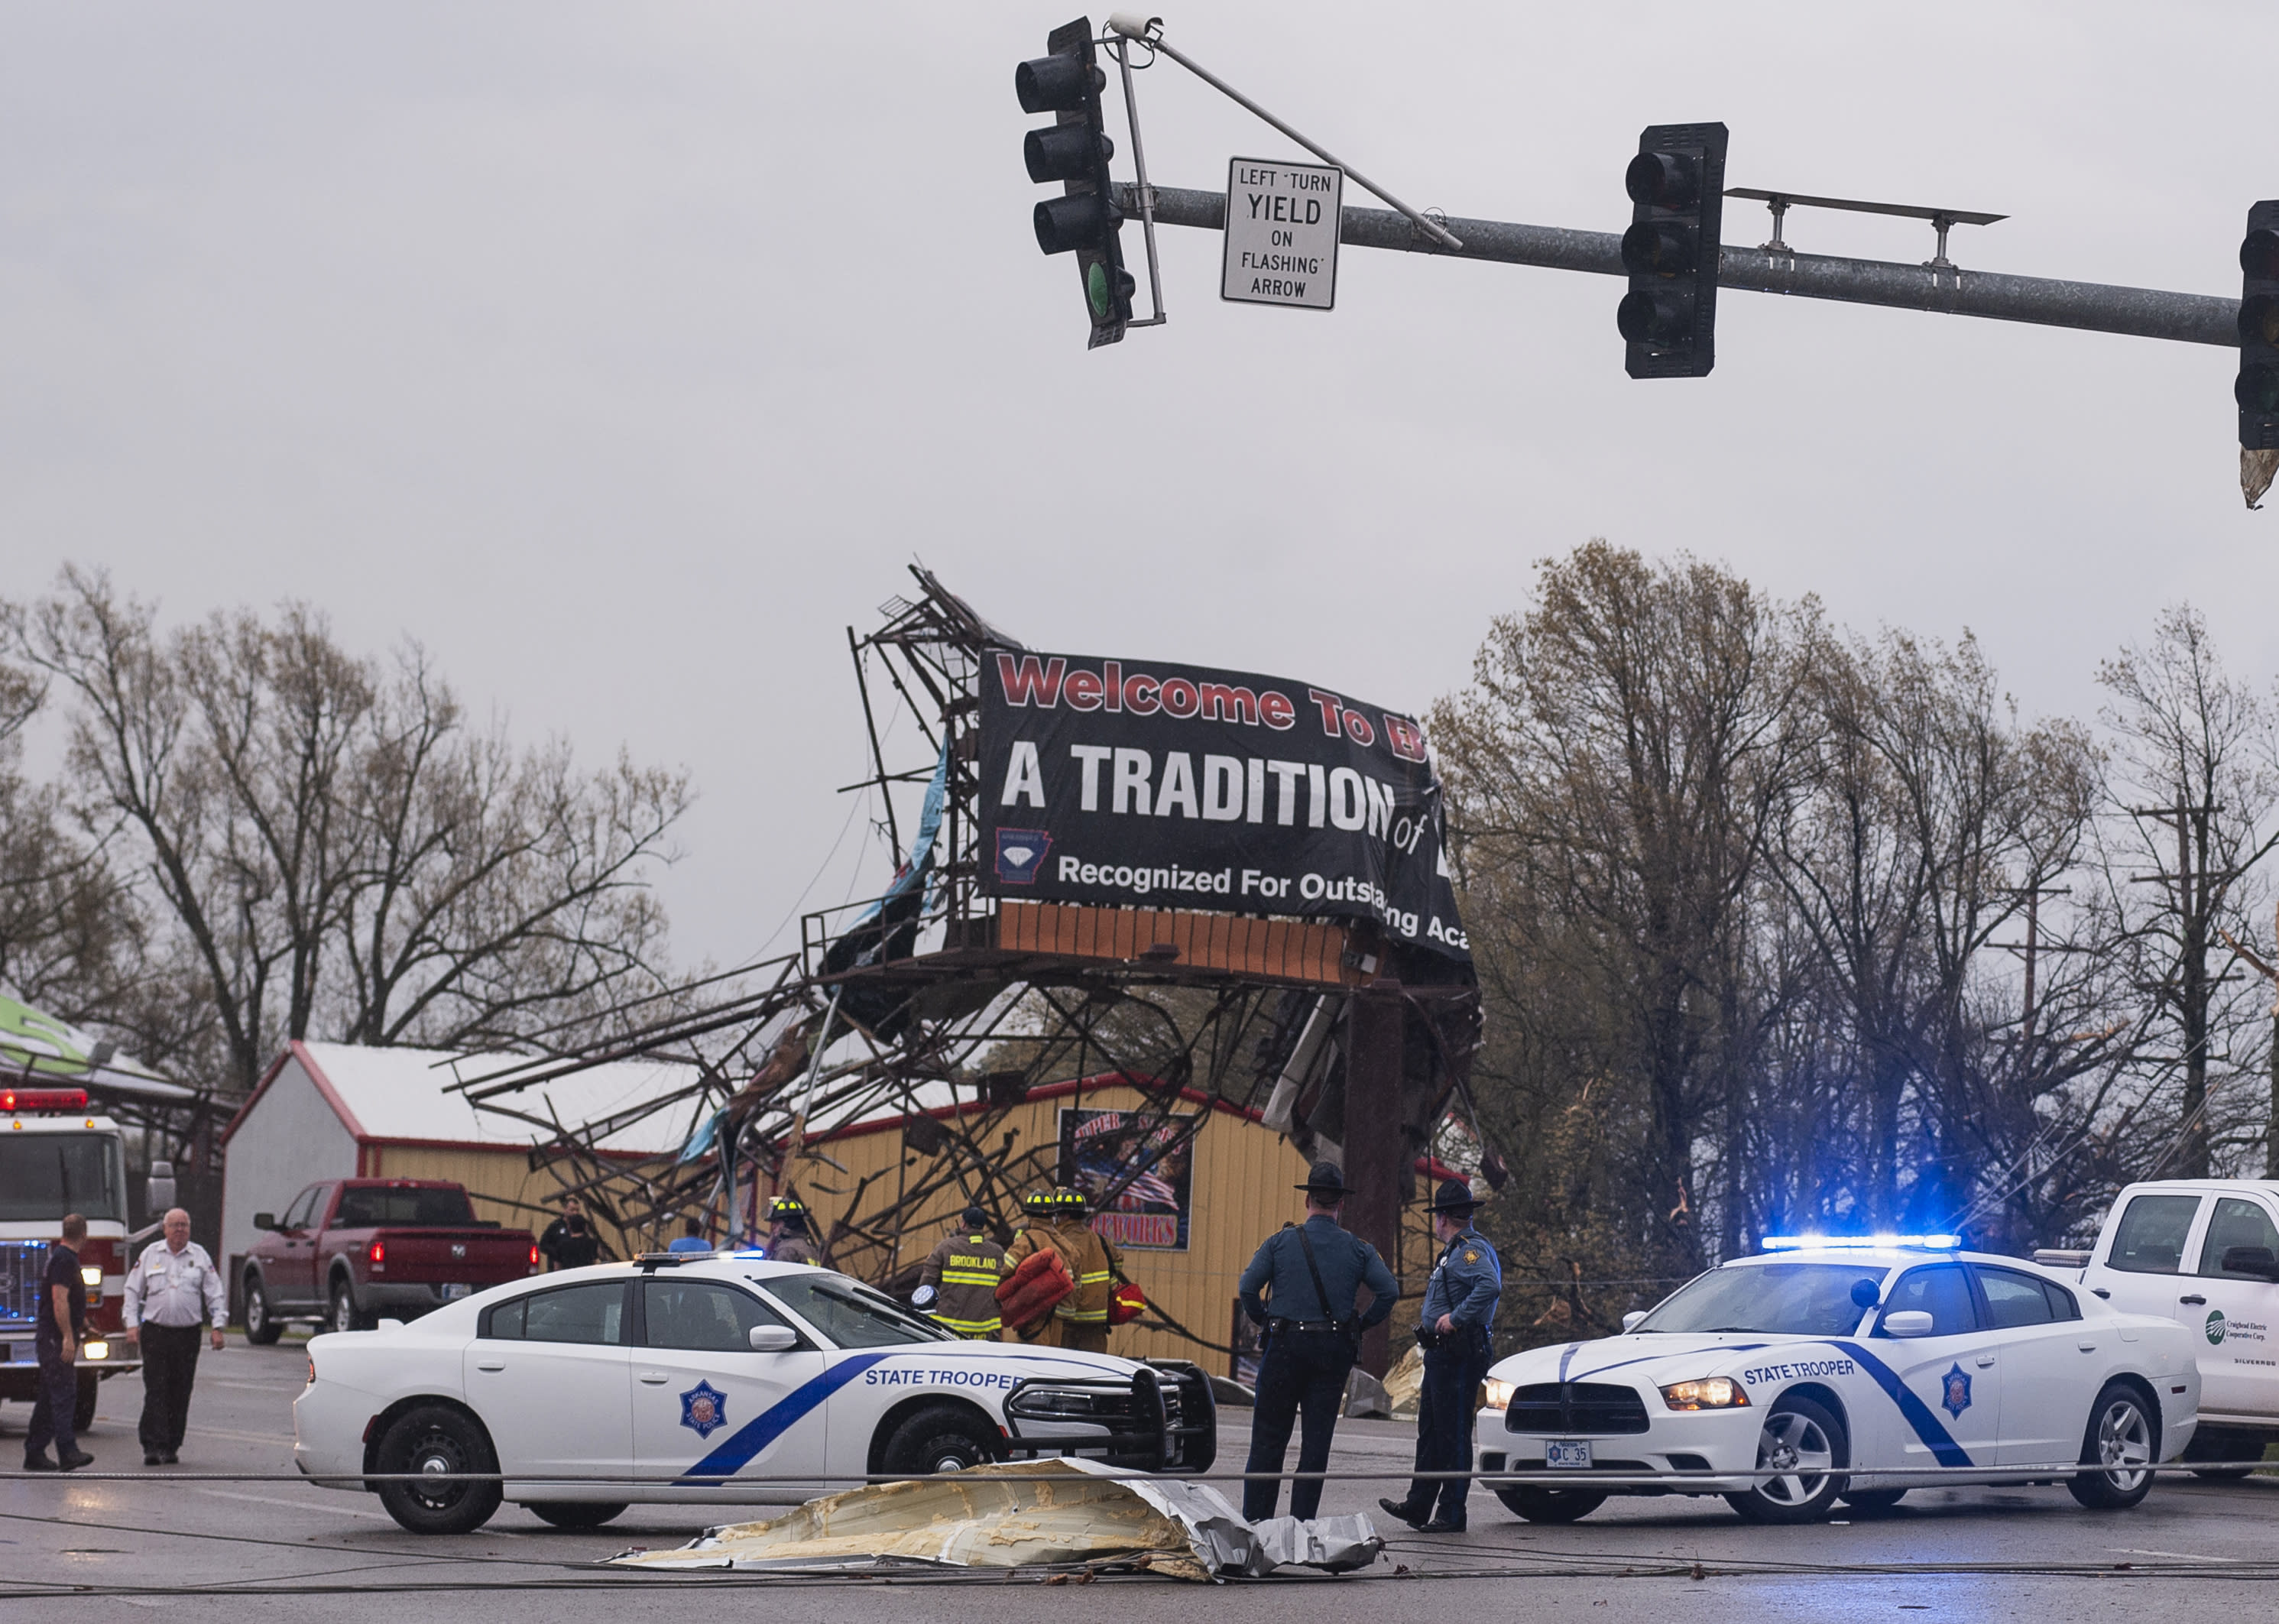 Arkansas State Police and other first responders survey the damage in Jonesboro, Ark., Saturday, March 28, 2020, after a tornado touched down in the area. Officials in Arkansas say a tornado ripped through northeast Arkansas and hurt some people in the college town of Jonesboro. (Quentin Winstine/The Jonesboro Sun via AP)